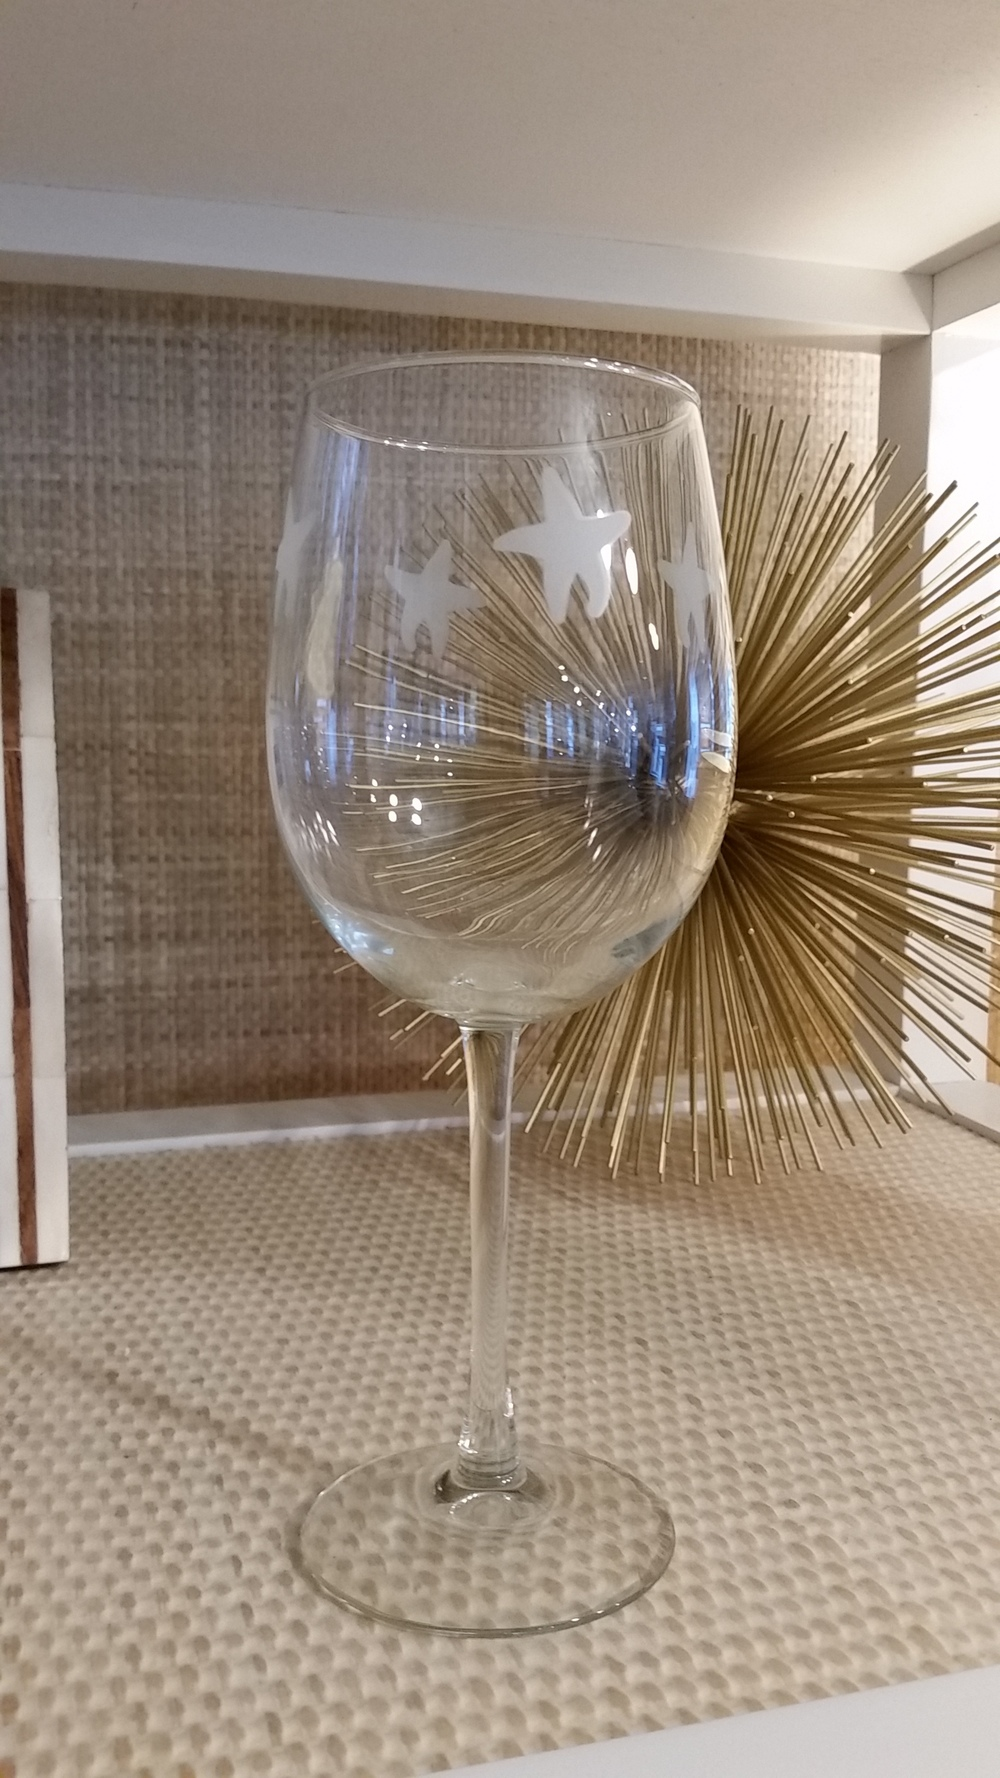 17250 - Large Wine Glass w/Starfish(4) - $15/each   - Received(4)